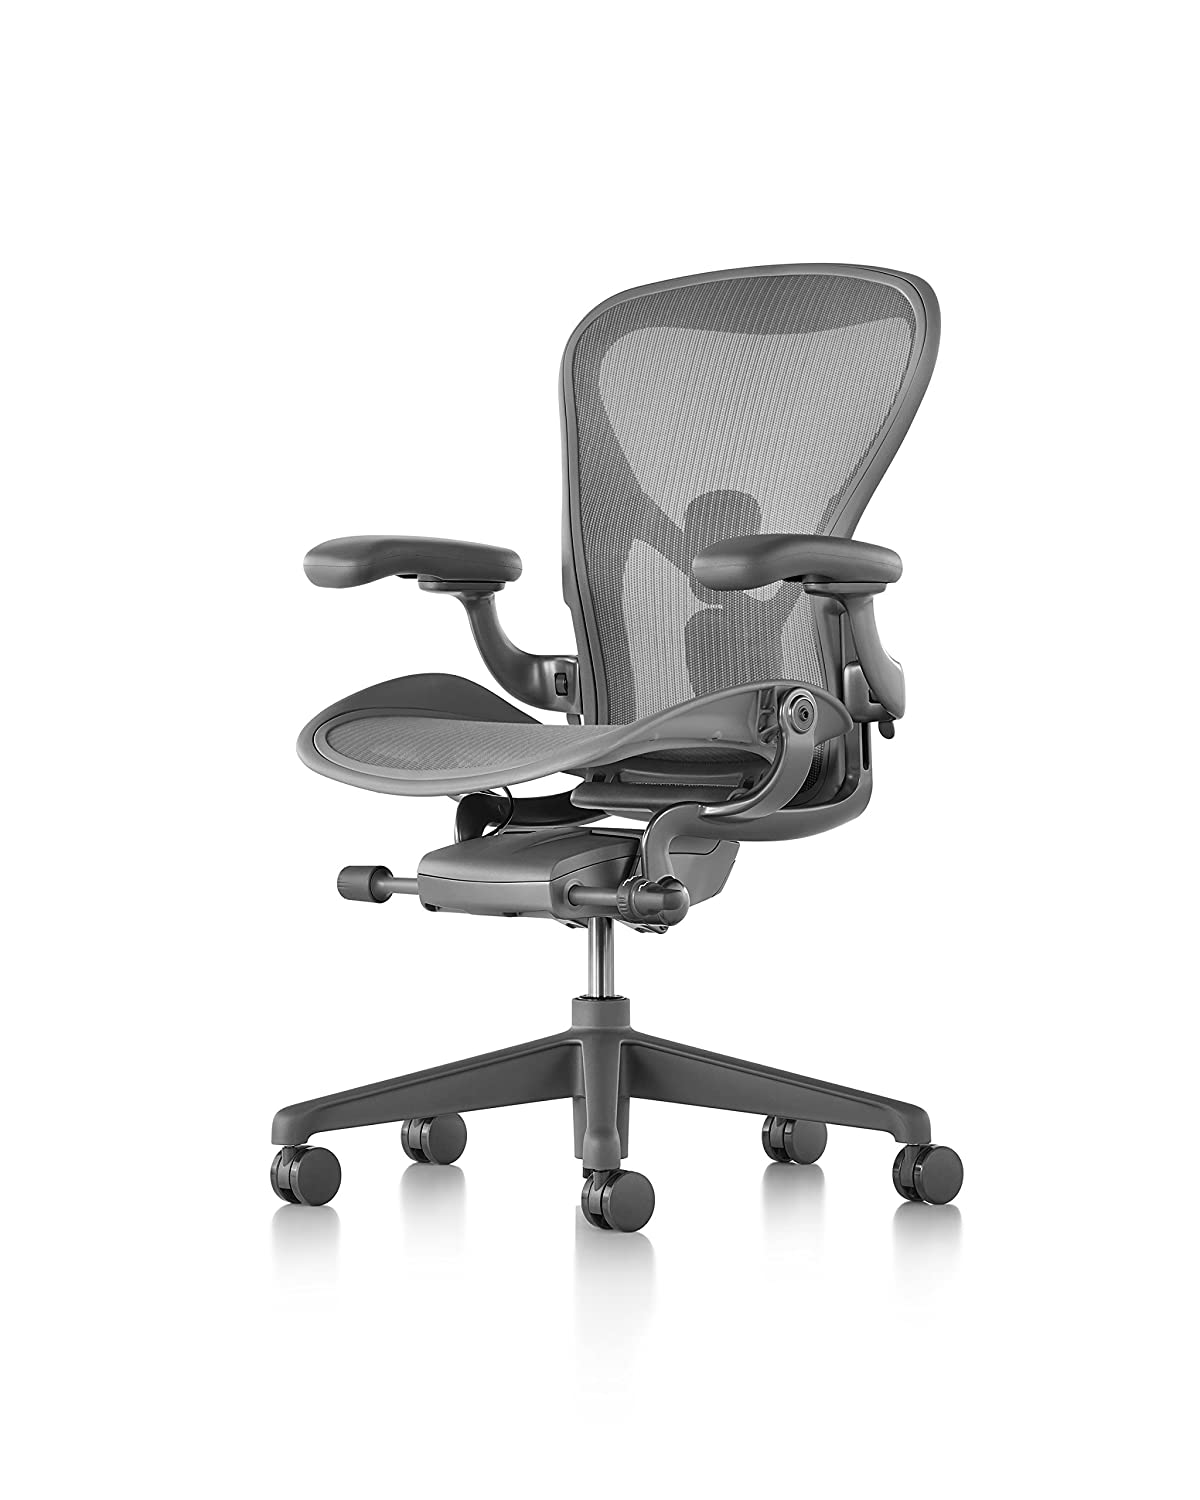 1afb0ca3dea Amazon.com  Herman Miller Aeron Chair